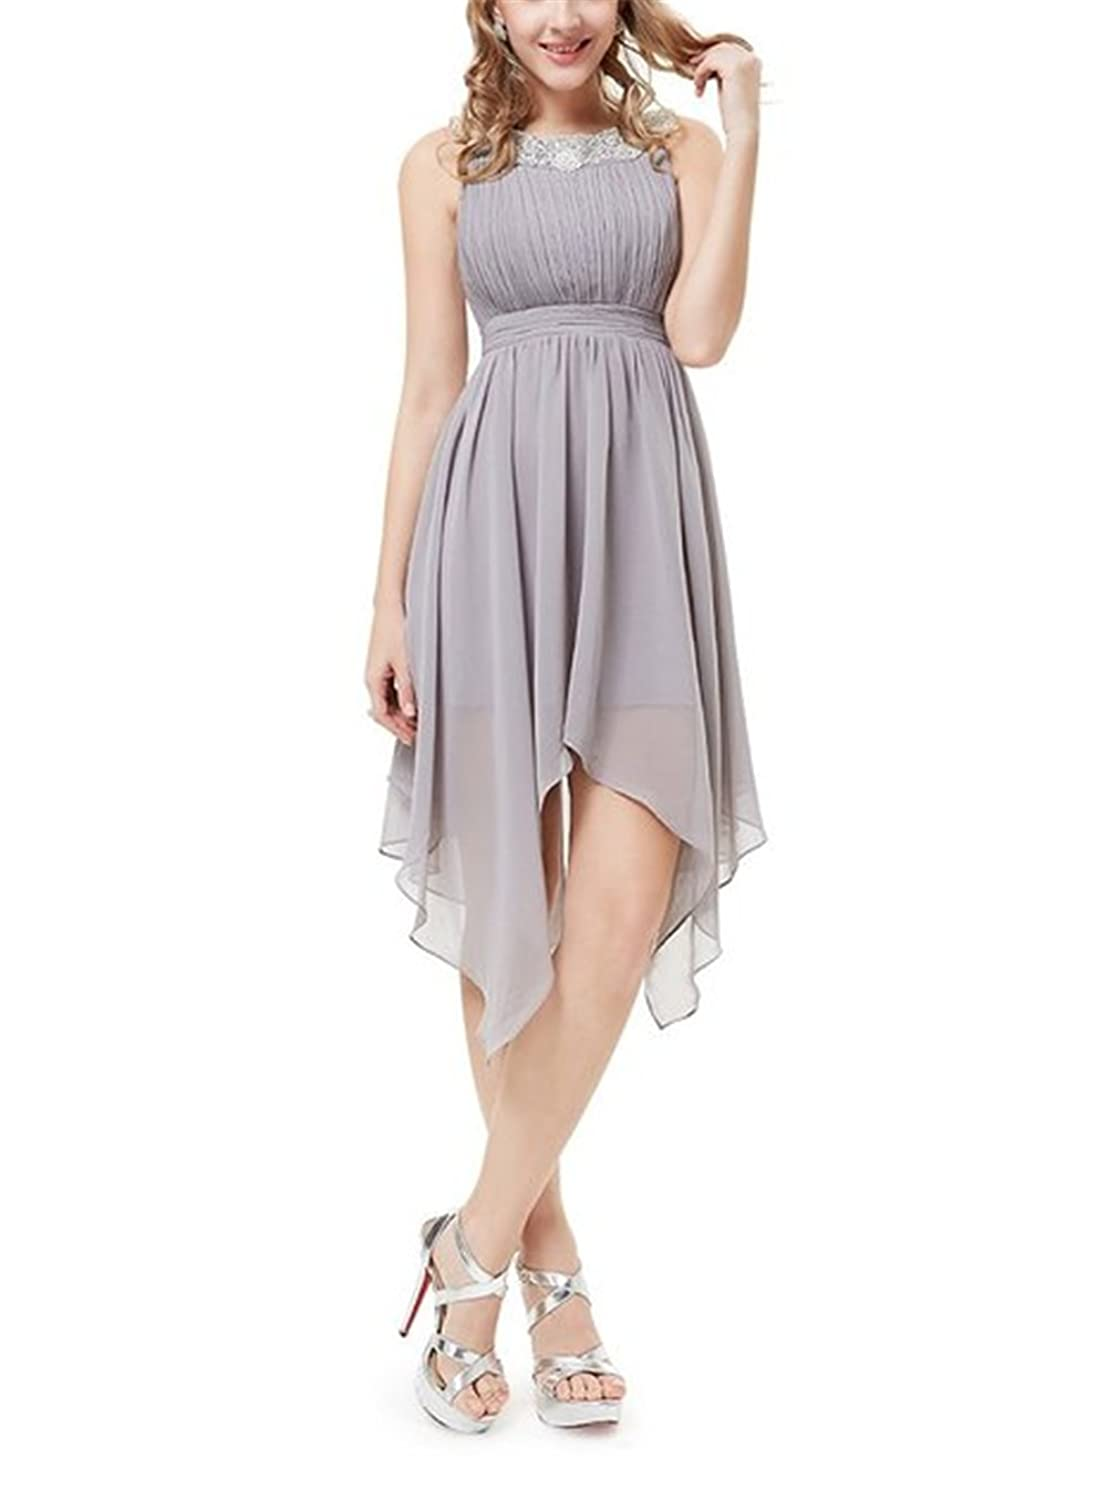 HelloBeautyThingsRound Neckline Ruched Bust Asymmetric Party Dress